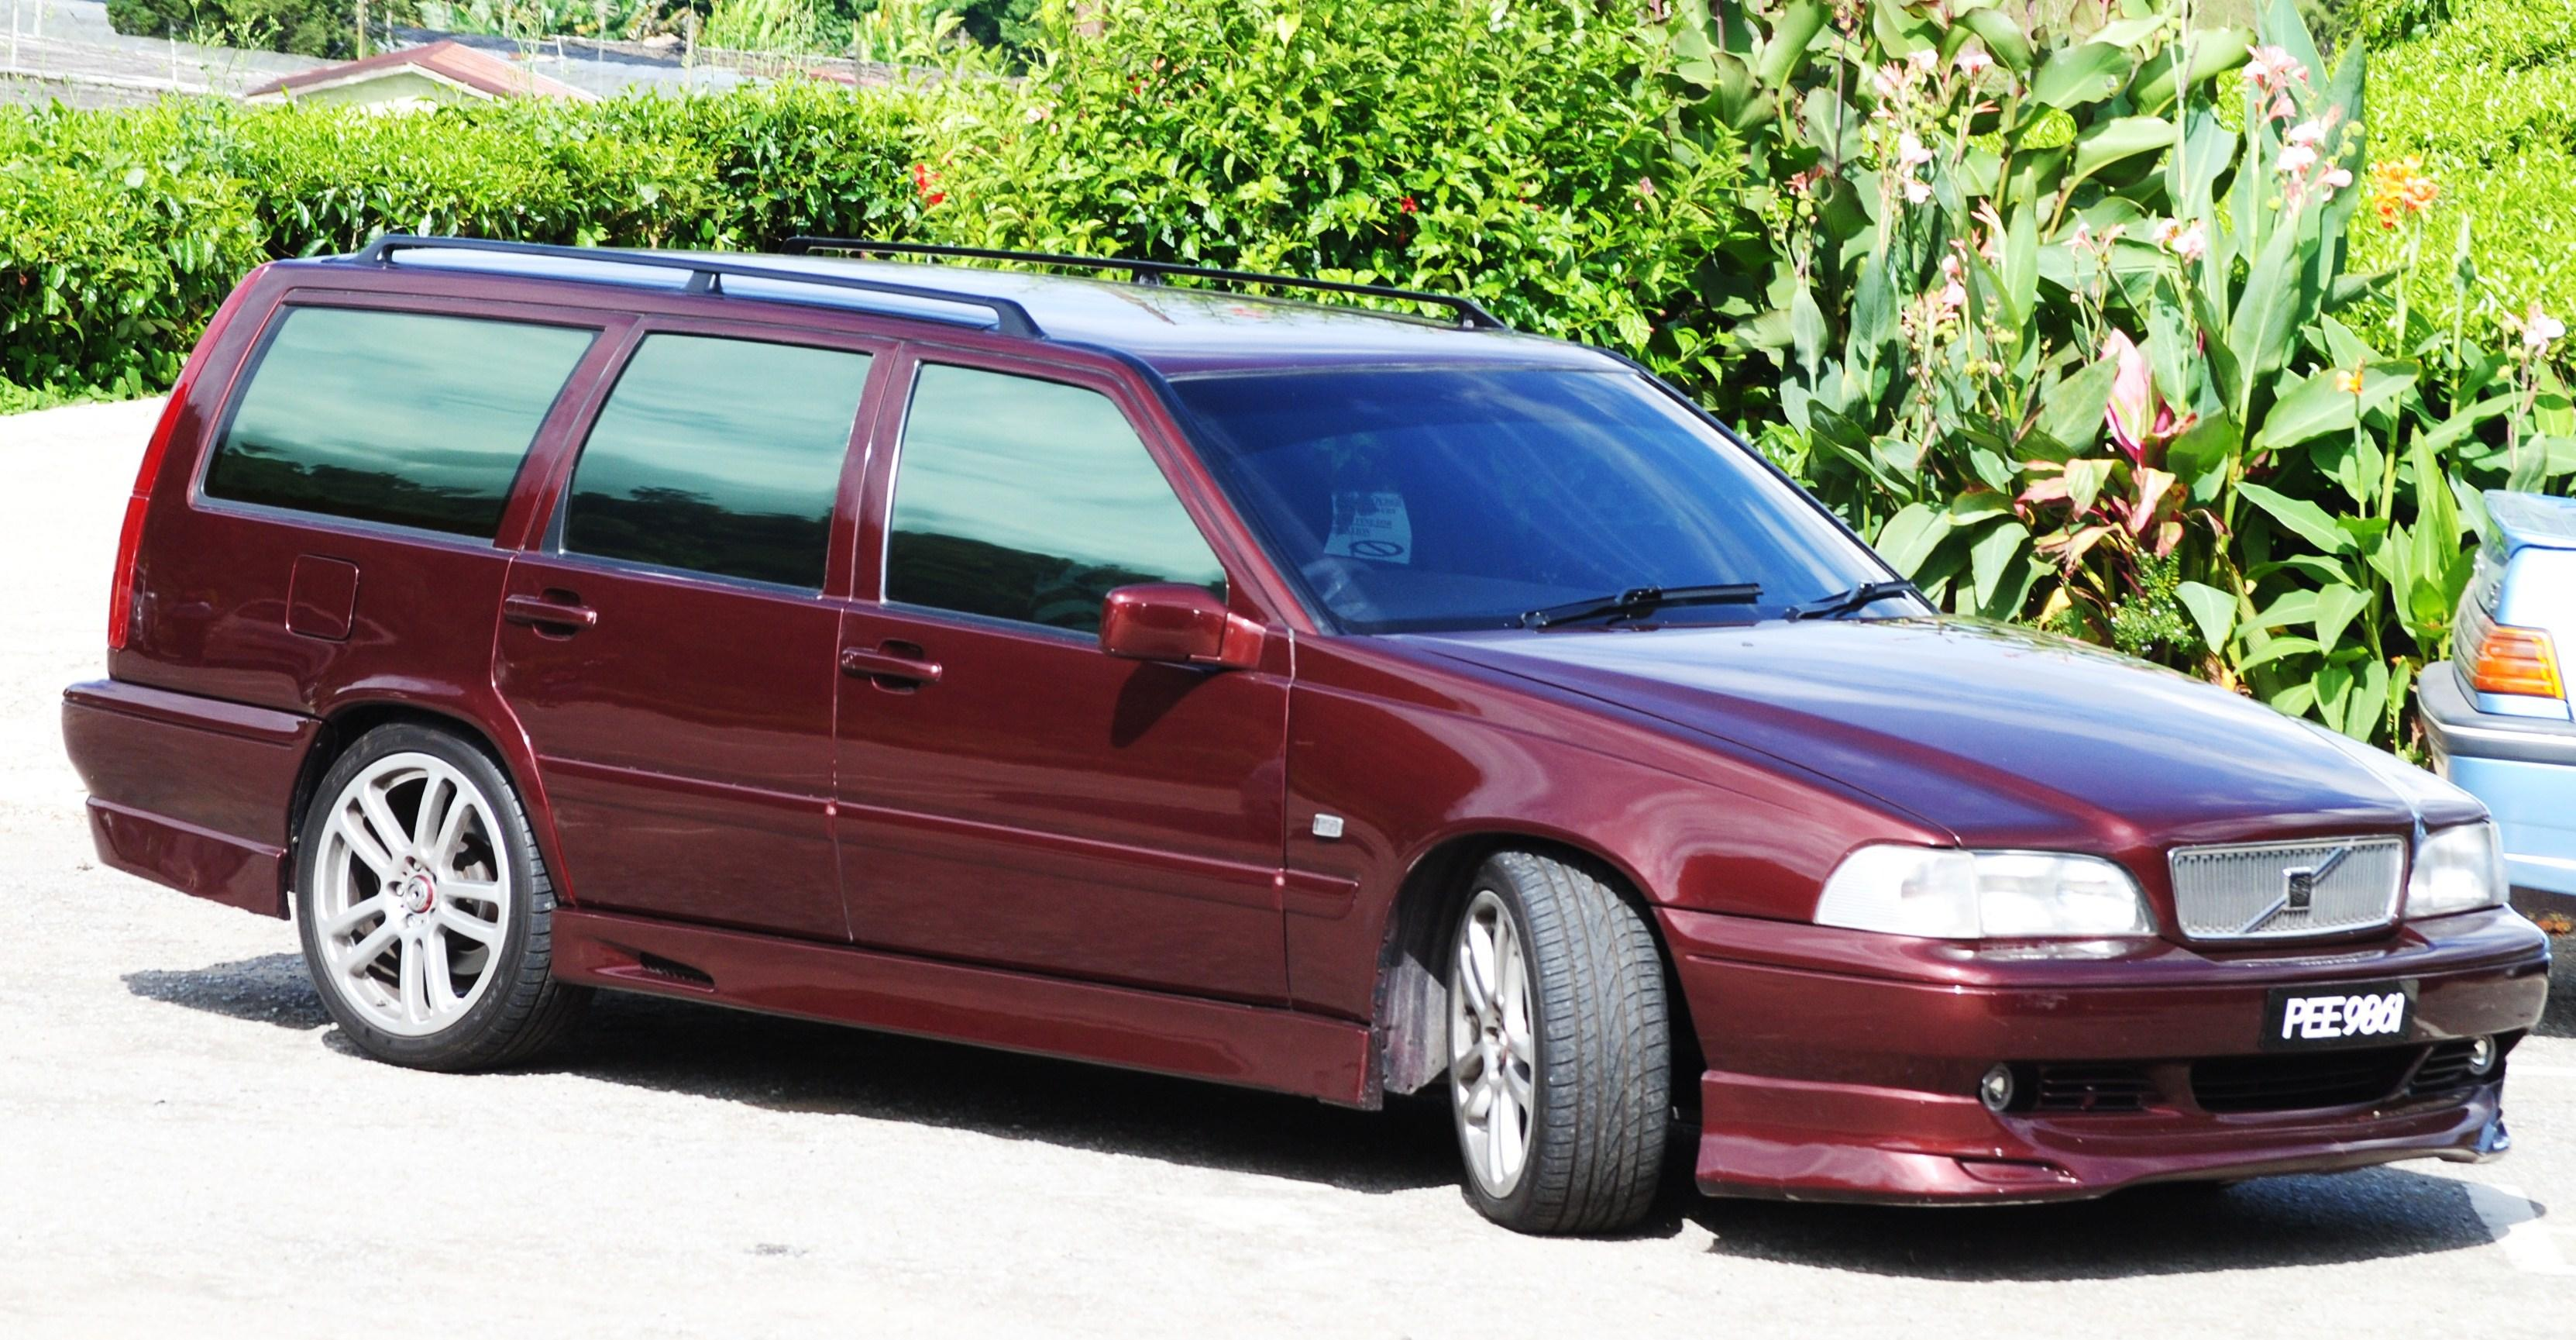 pee9861 1999 volvo v70 specs, photos, modification info at cardomain